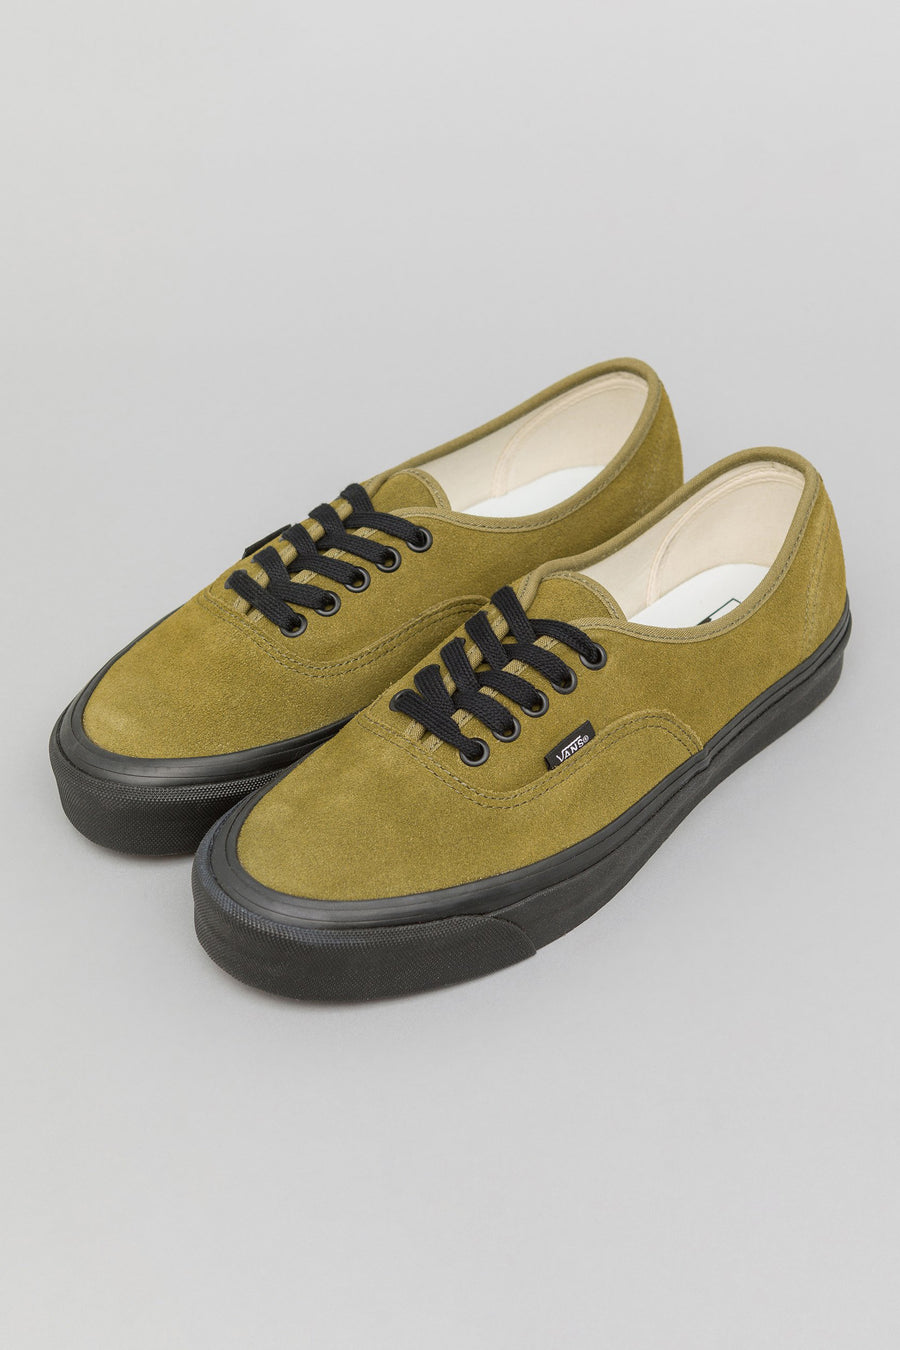 Vans Authentic 44 DX Anaheim Factory in OG Olive - Notre